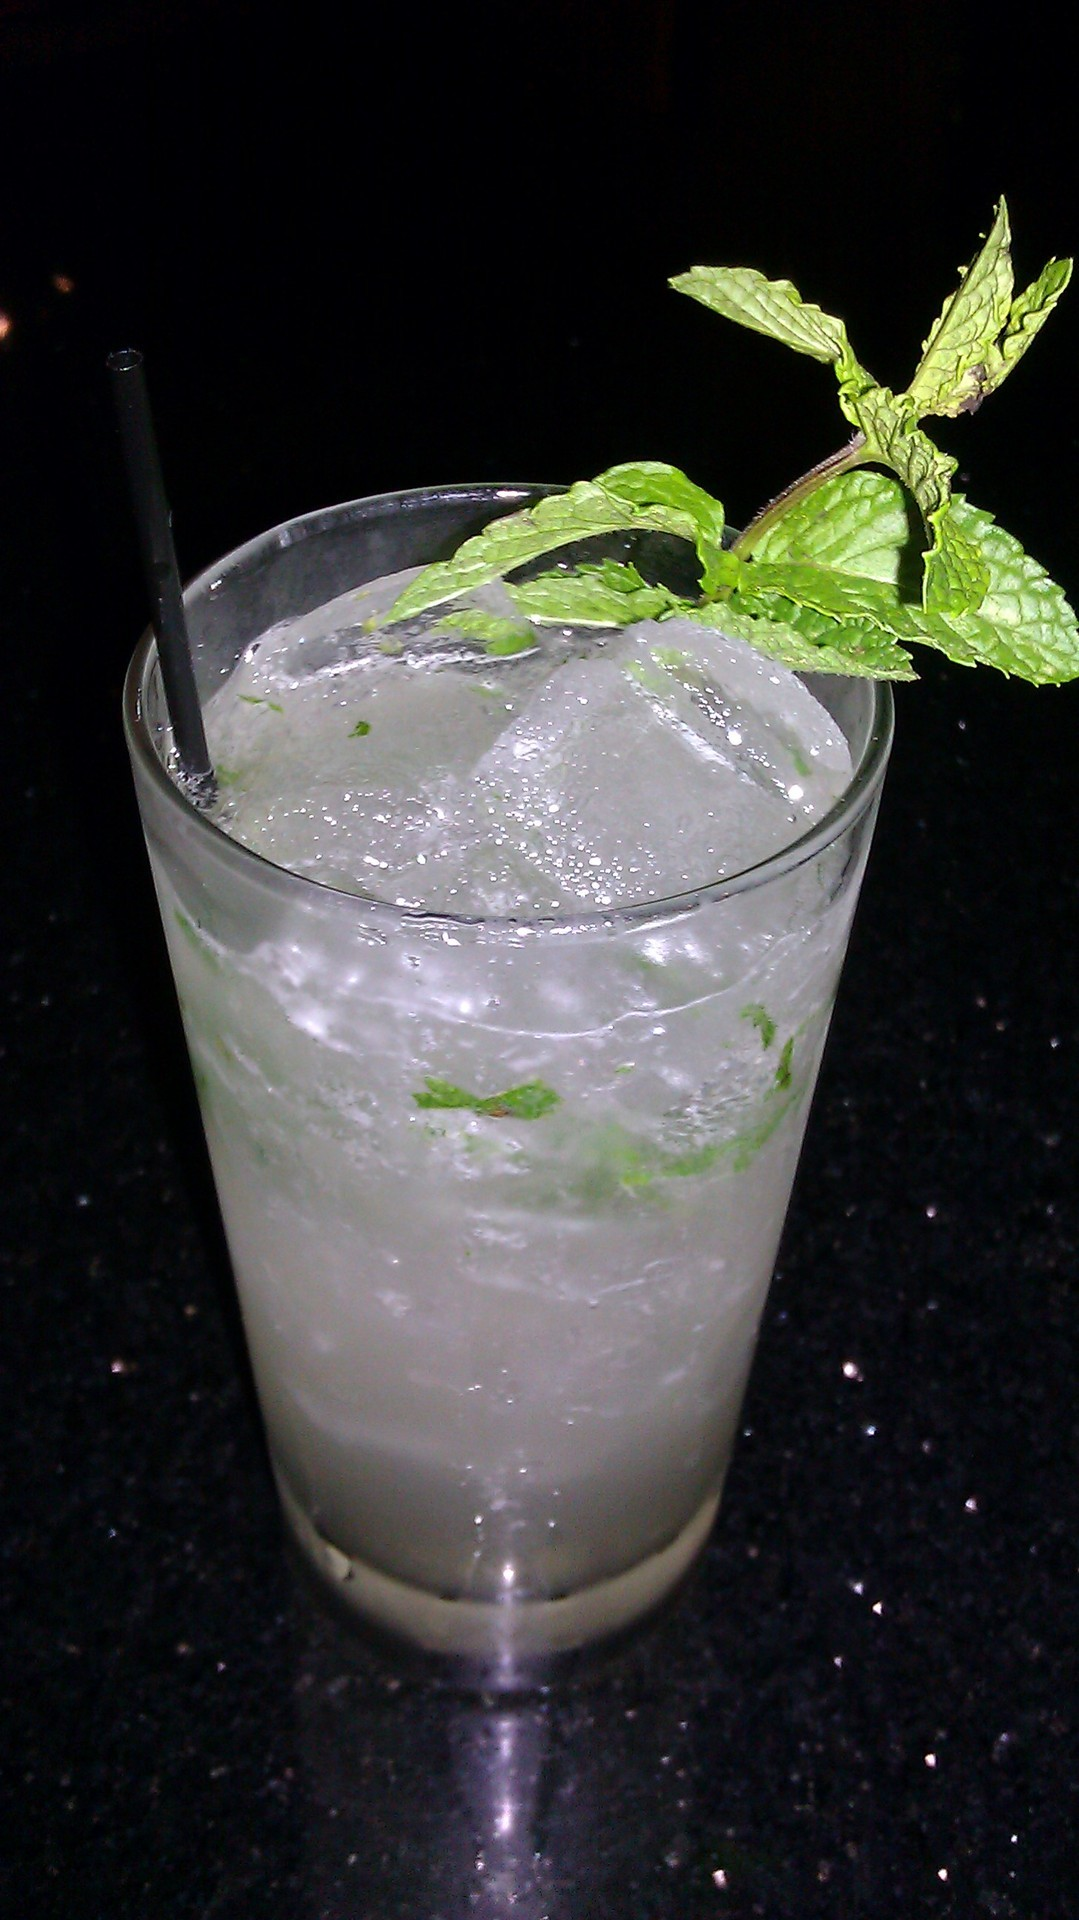 The Momokawa Mojito. One of our special drinks for the summer. Come try it out!